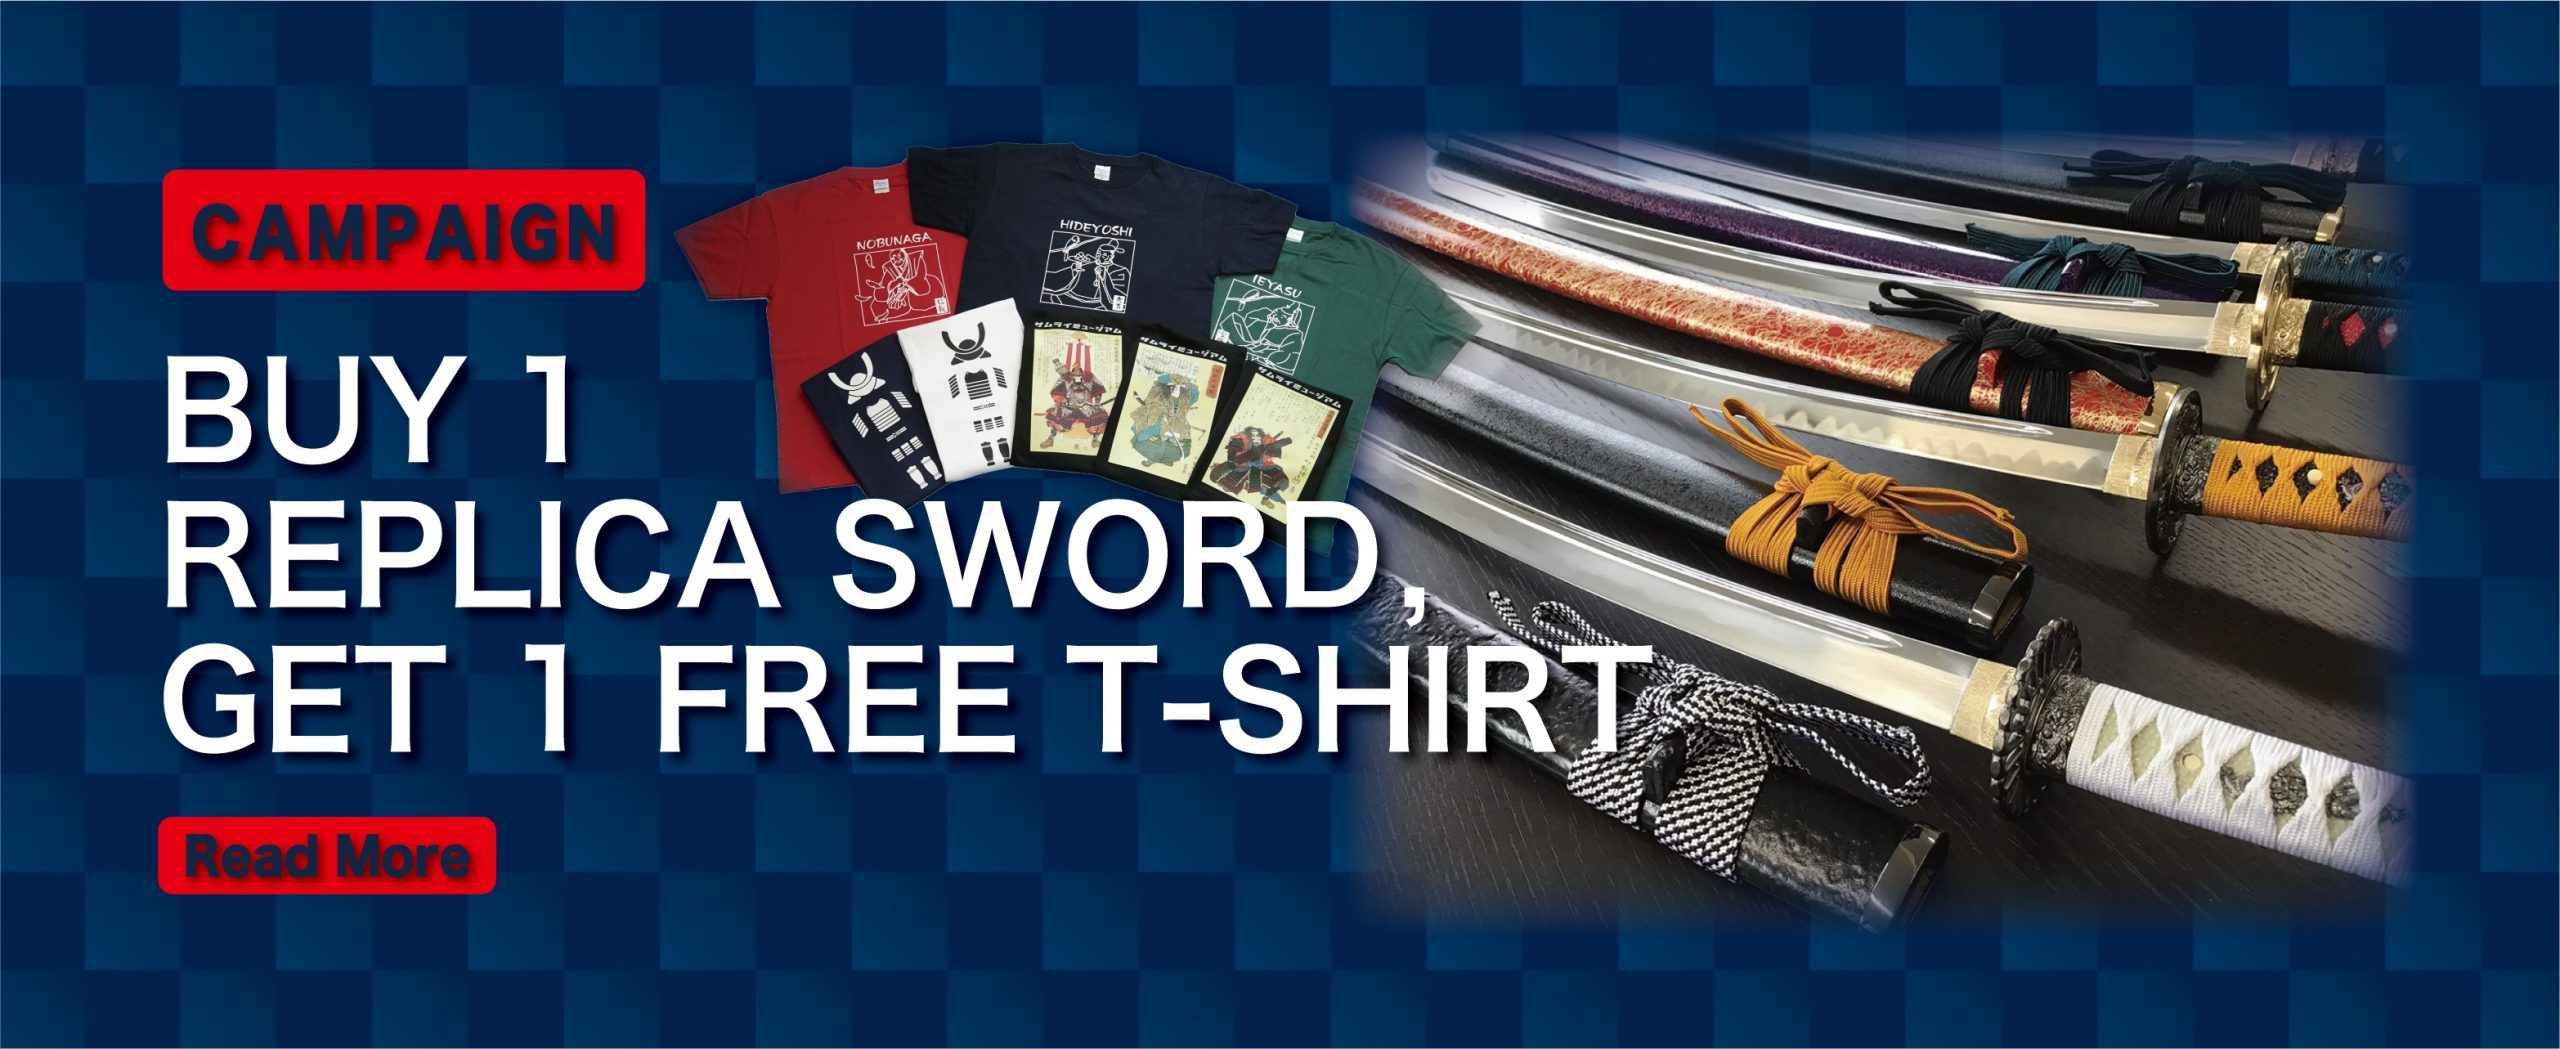 BUY 1 REPLICA SWORD, GET 1 FREE T-SHIRT